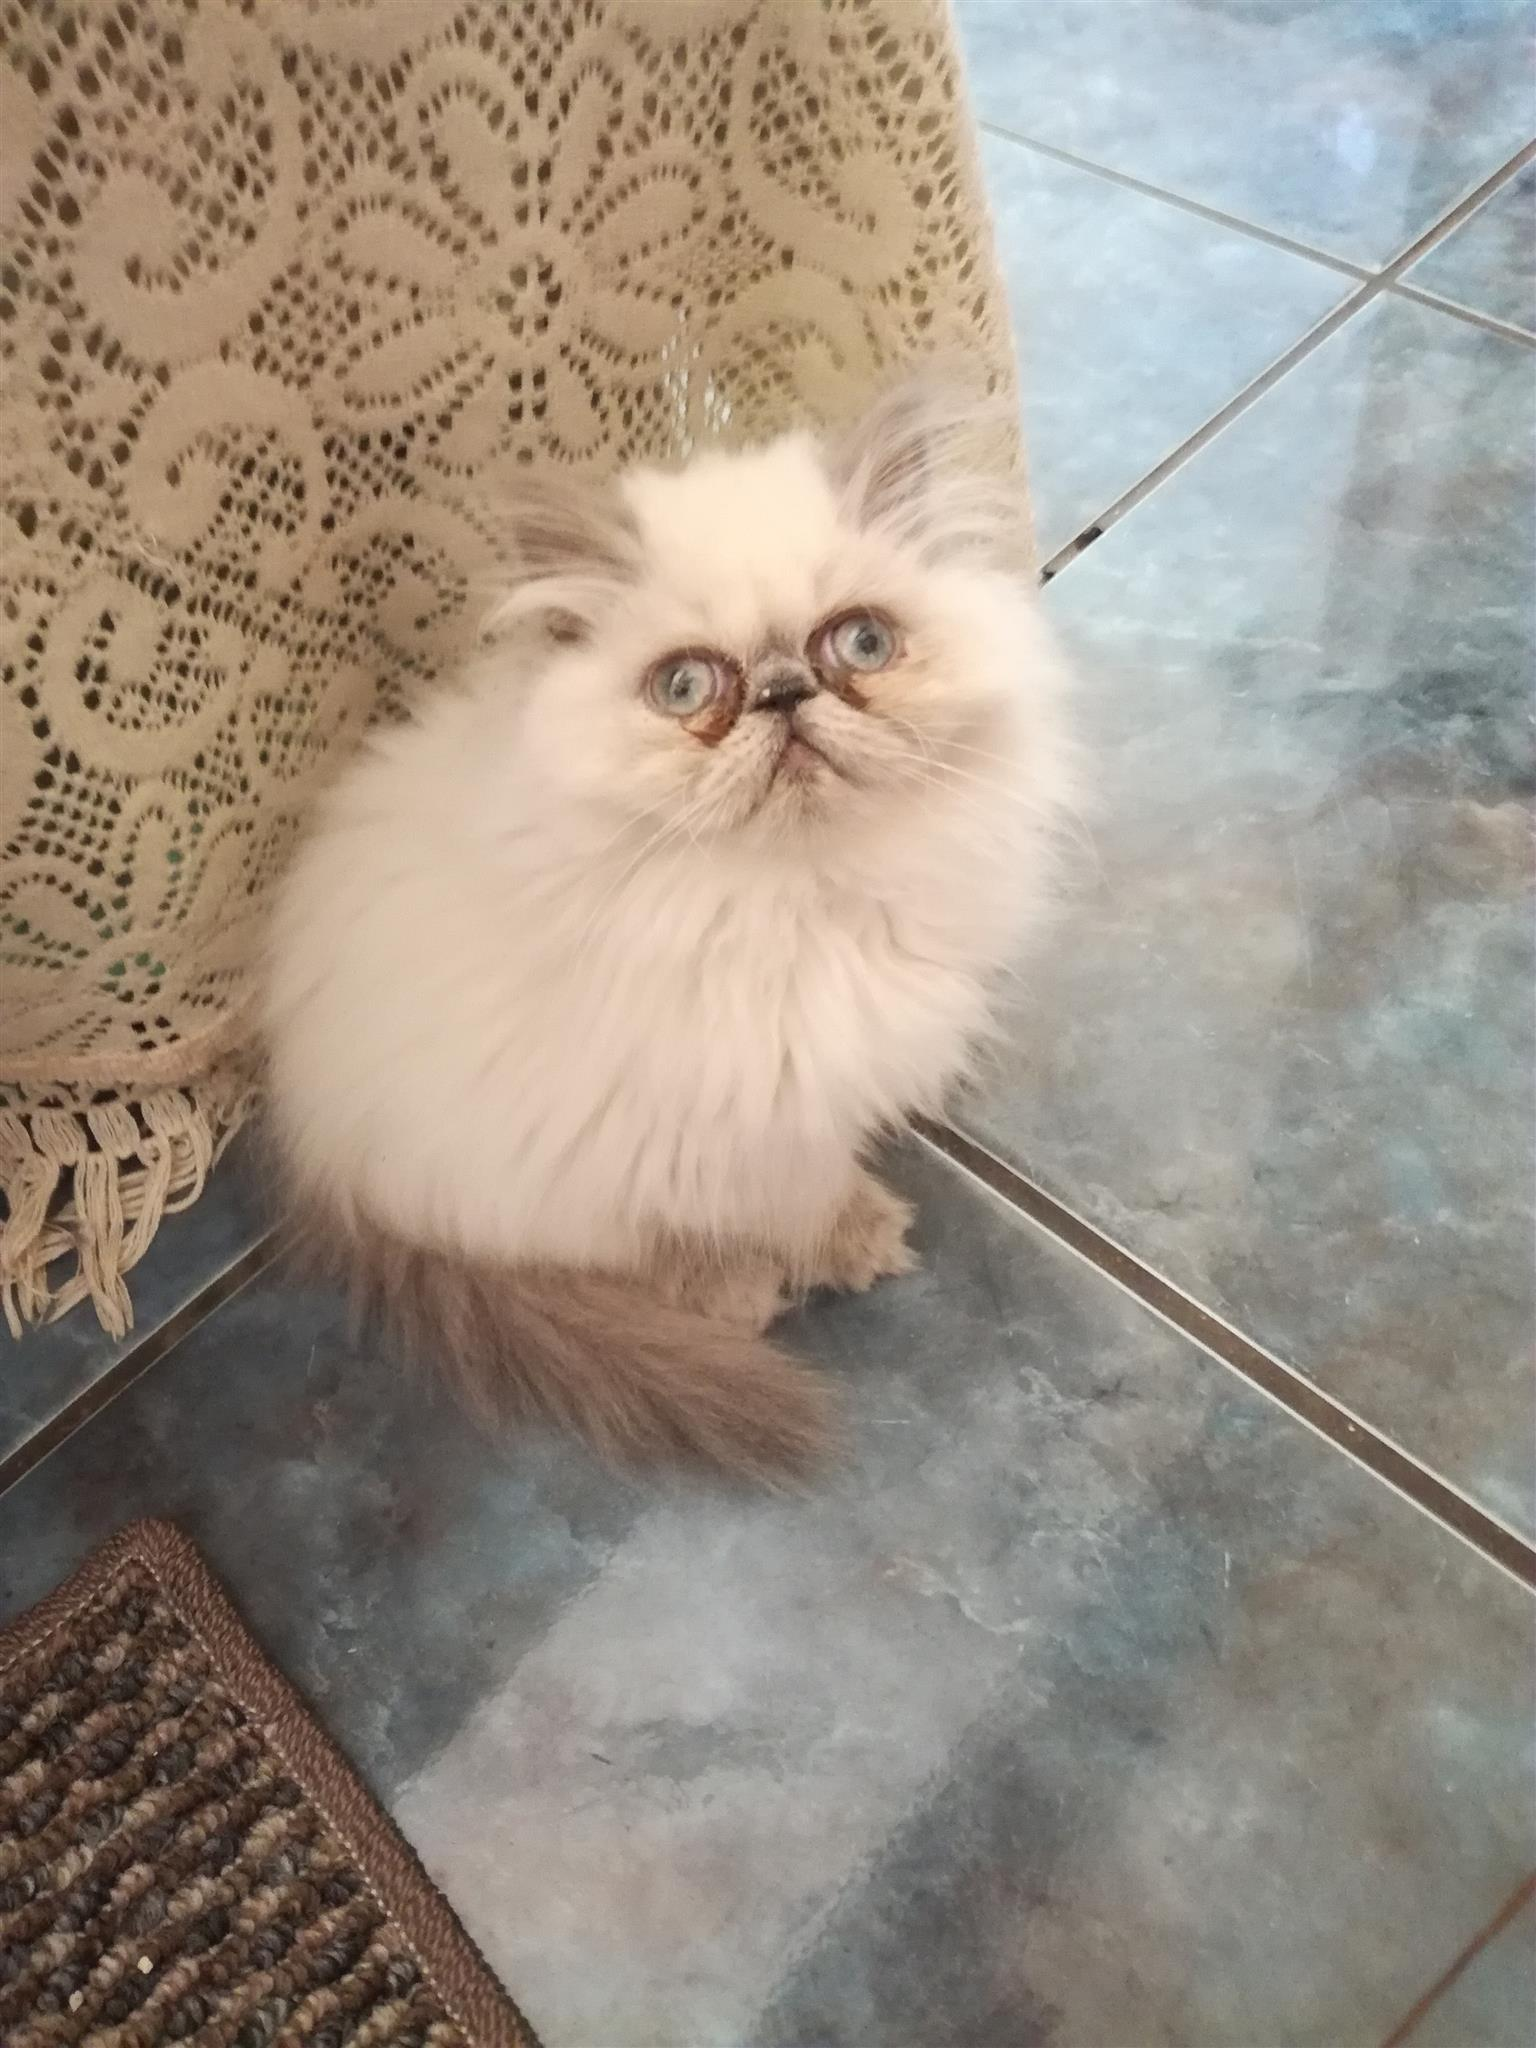 Persian kittens for sale | Junk Mail